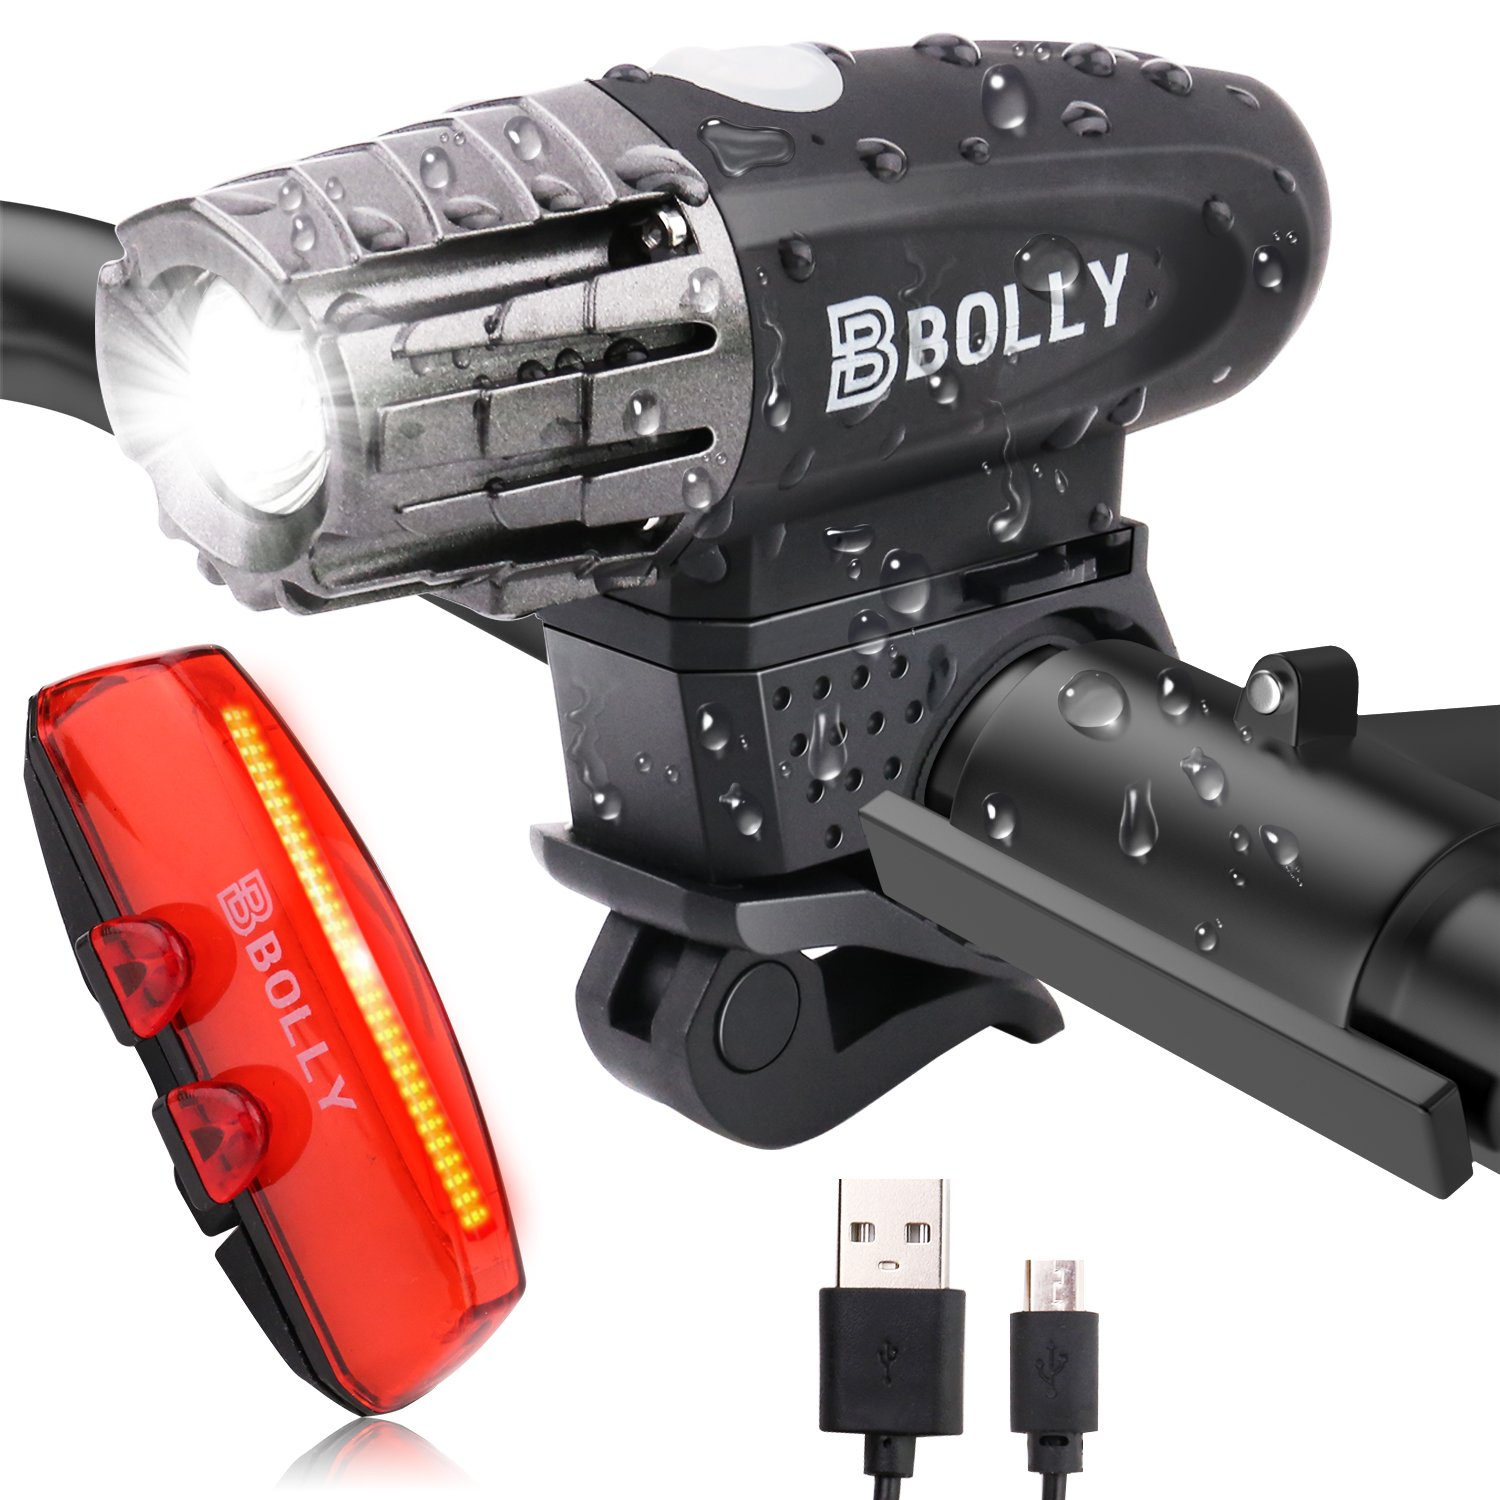 Bolly USB Rechargeable Bike Light Set, 340 Lumens Super Bright Waterproof LED Bicycle Headlight and Taillight Front and Rear Light for Cycling Safety